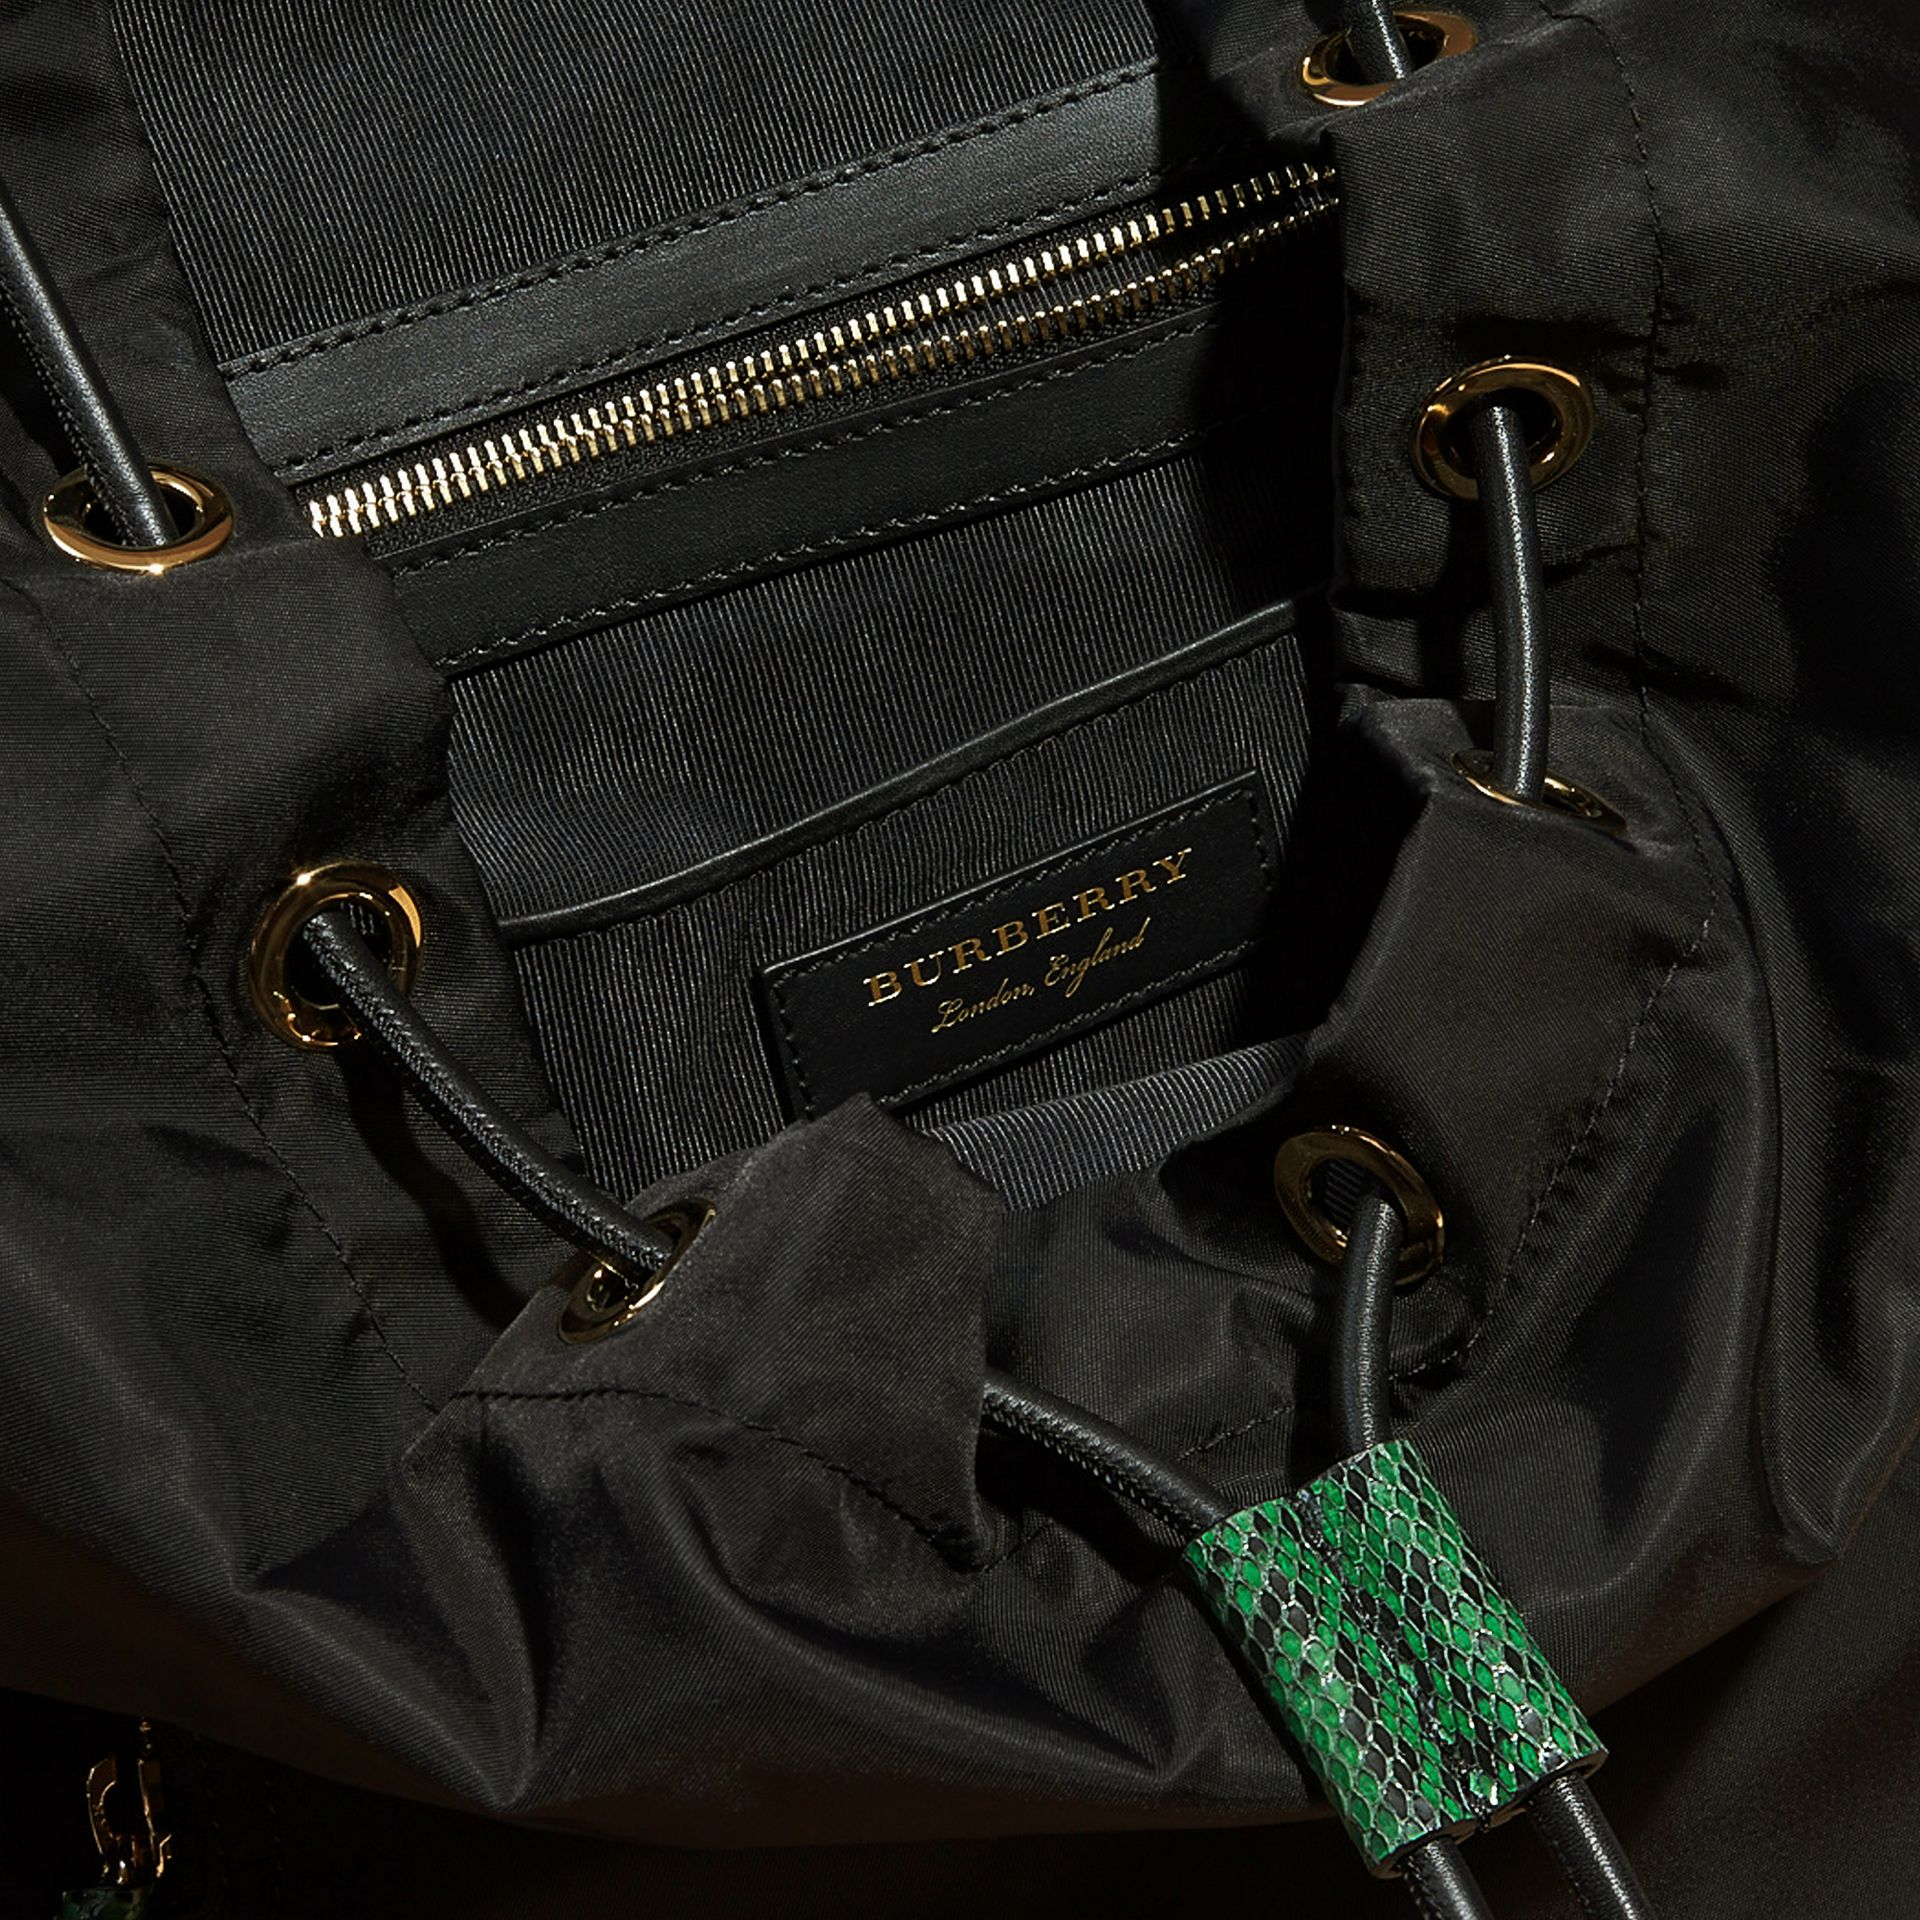 Black/bright green The Large Rucksack in Technical Nylon and Snakeskin Black/bright Green - gallery image 7